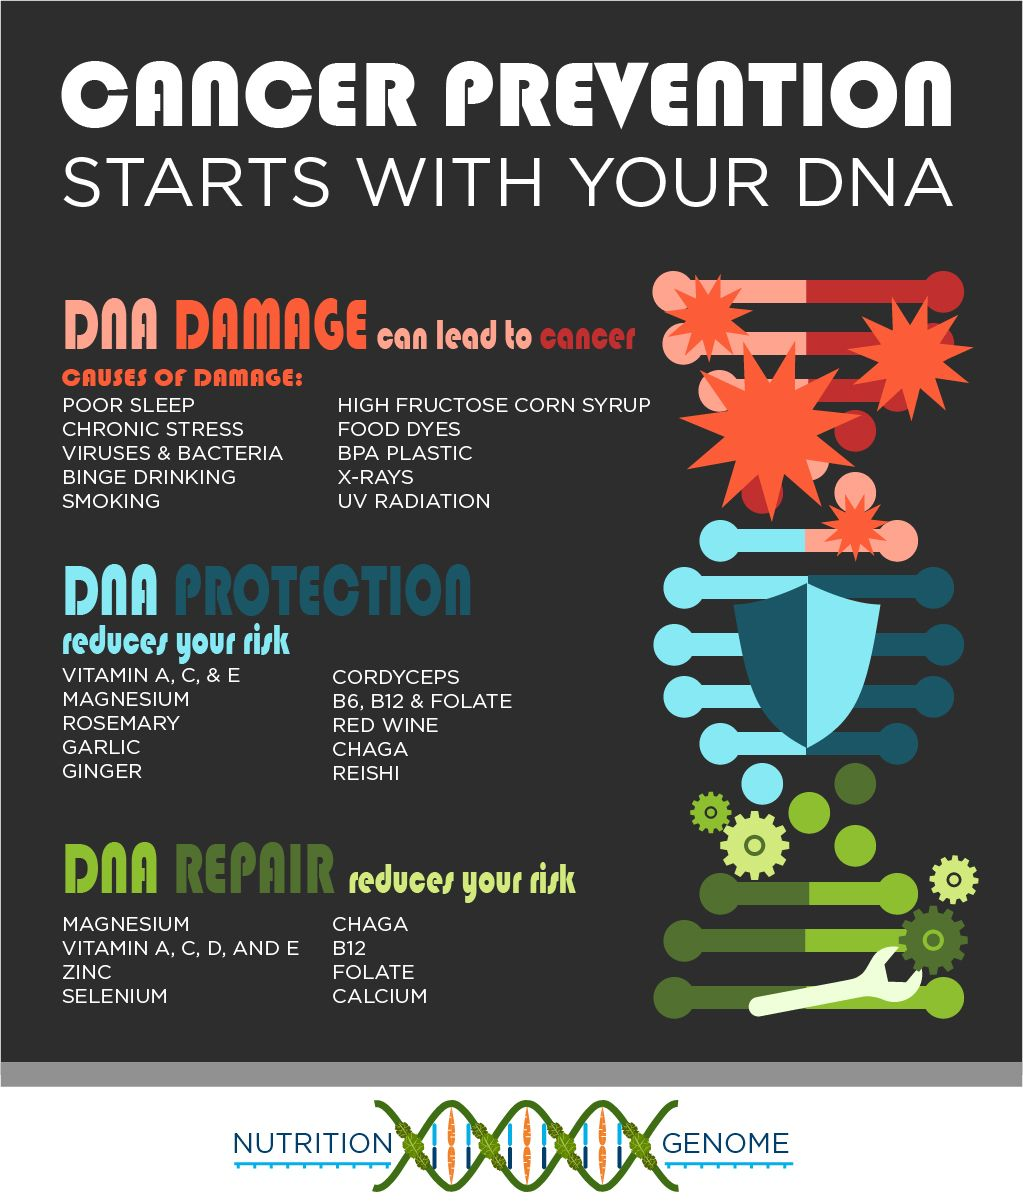 Cancer prevention starts with your dna your gene story pinterest cancer prevention starts with your dna malvernweather Images